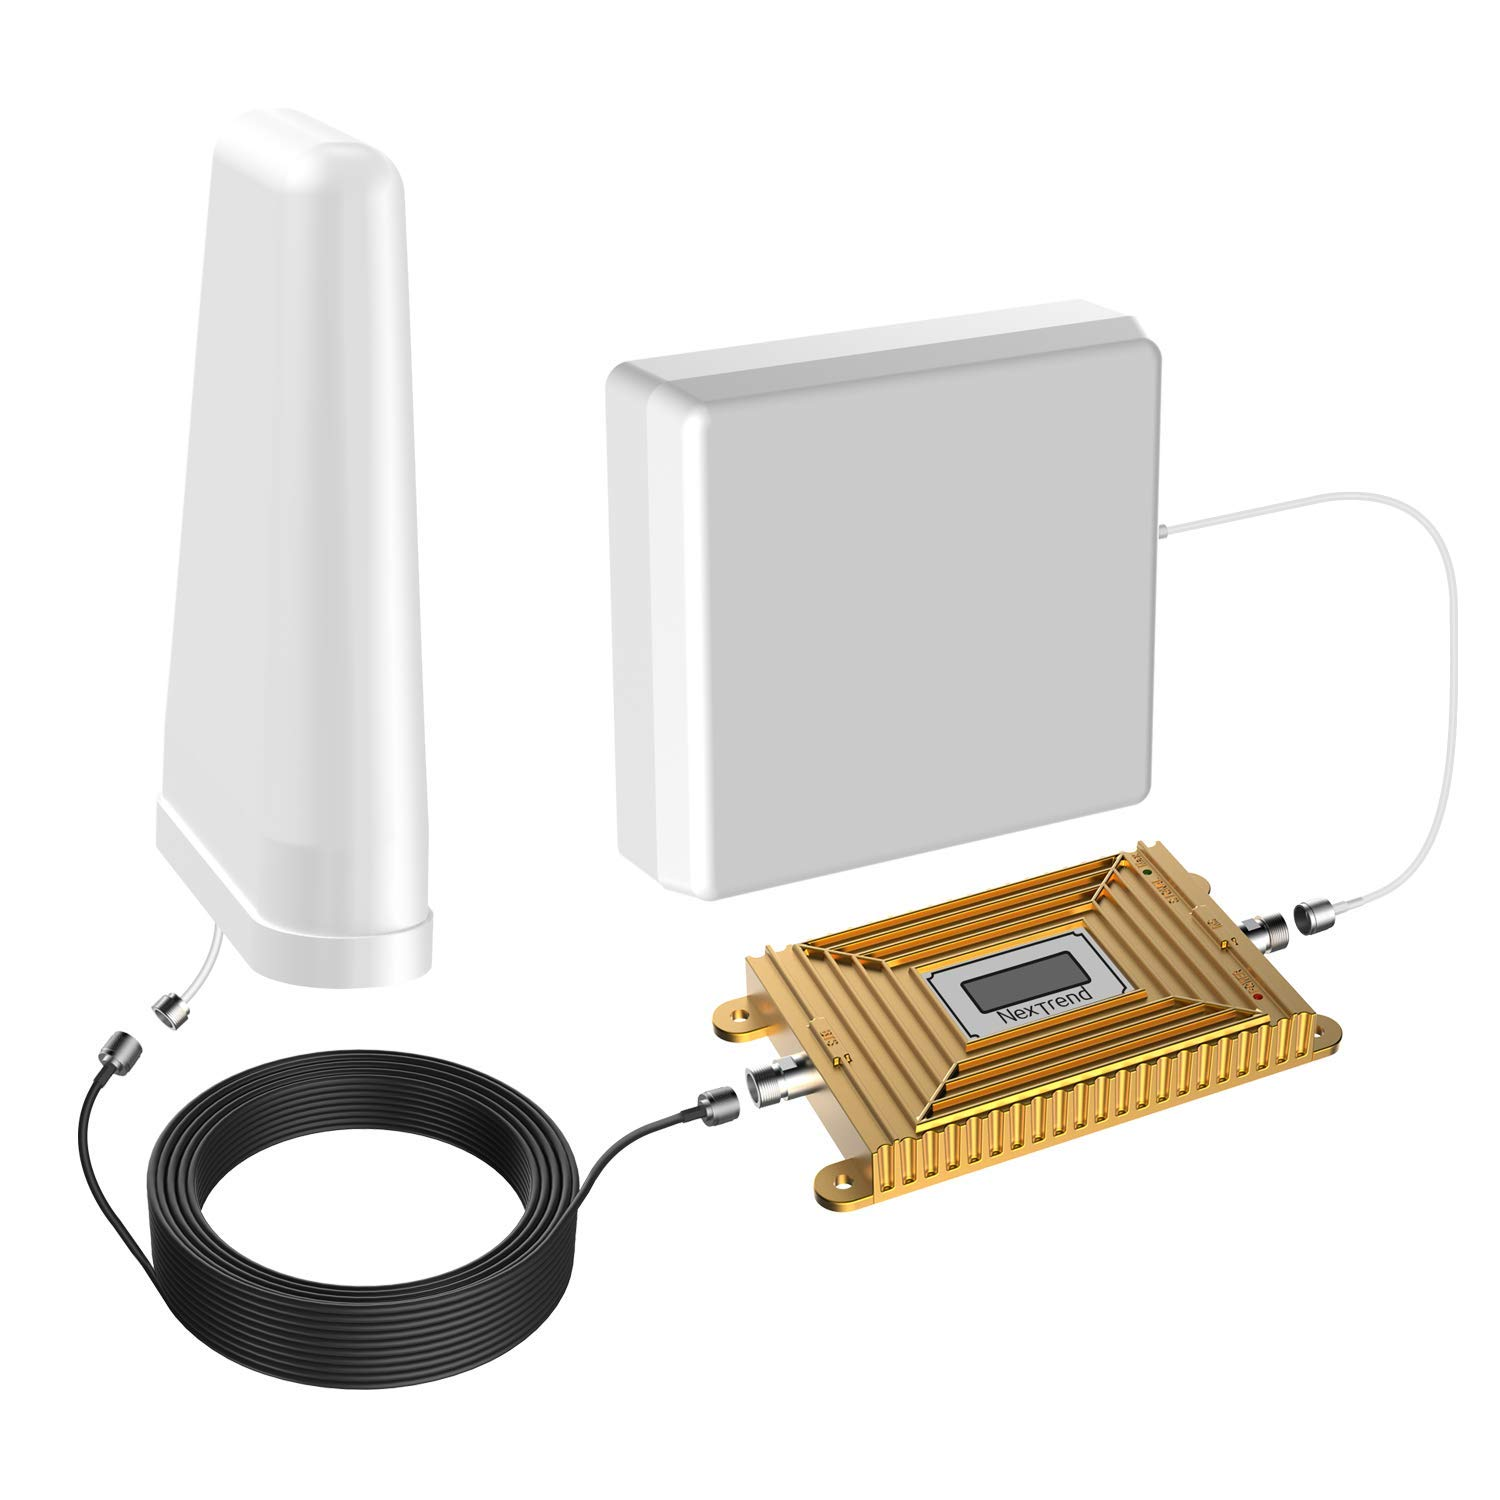 4G Cell Phone Signal Booster 700MHz Band 12/13/17 Cellular Signal Repeater Amplifier with Indoor Panel Antenna/Outdoor LPDA Antenna for Office or Home - Verizon, AT&T, T-Mobile, Sprint